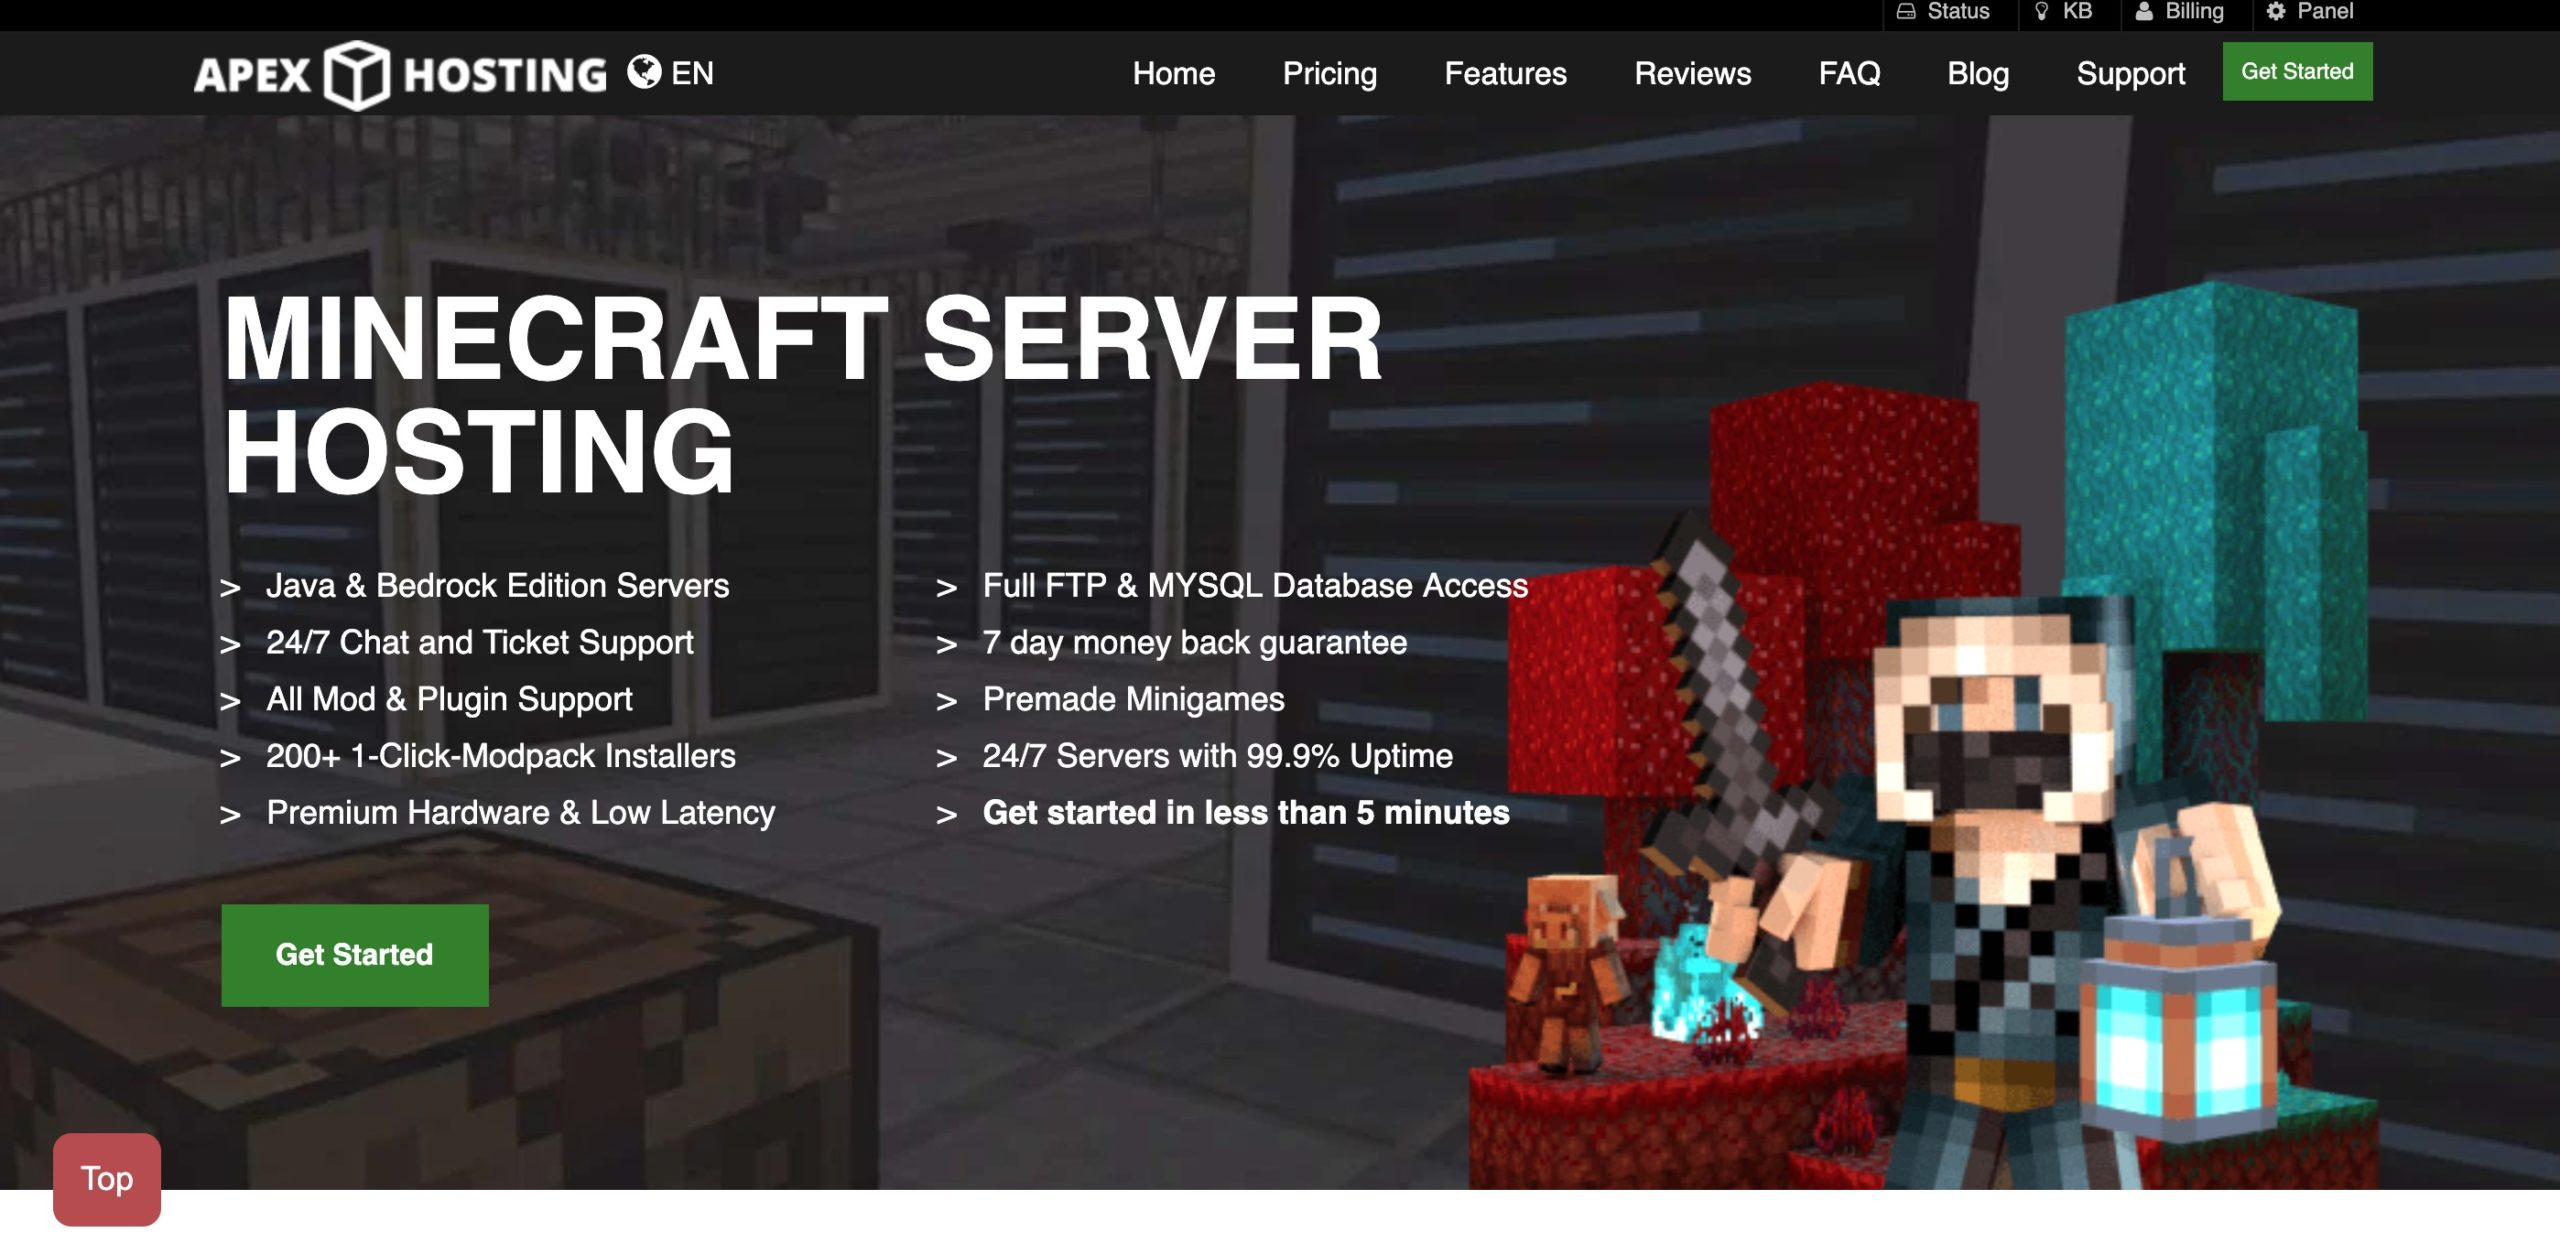 Minecraft server hosting: apex hosting